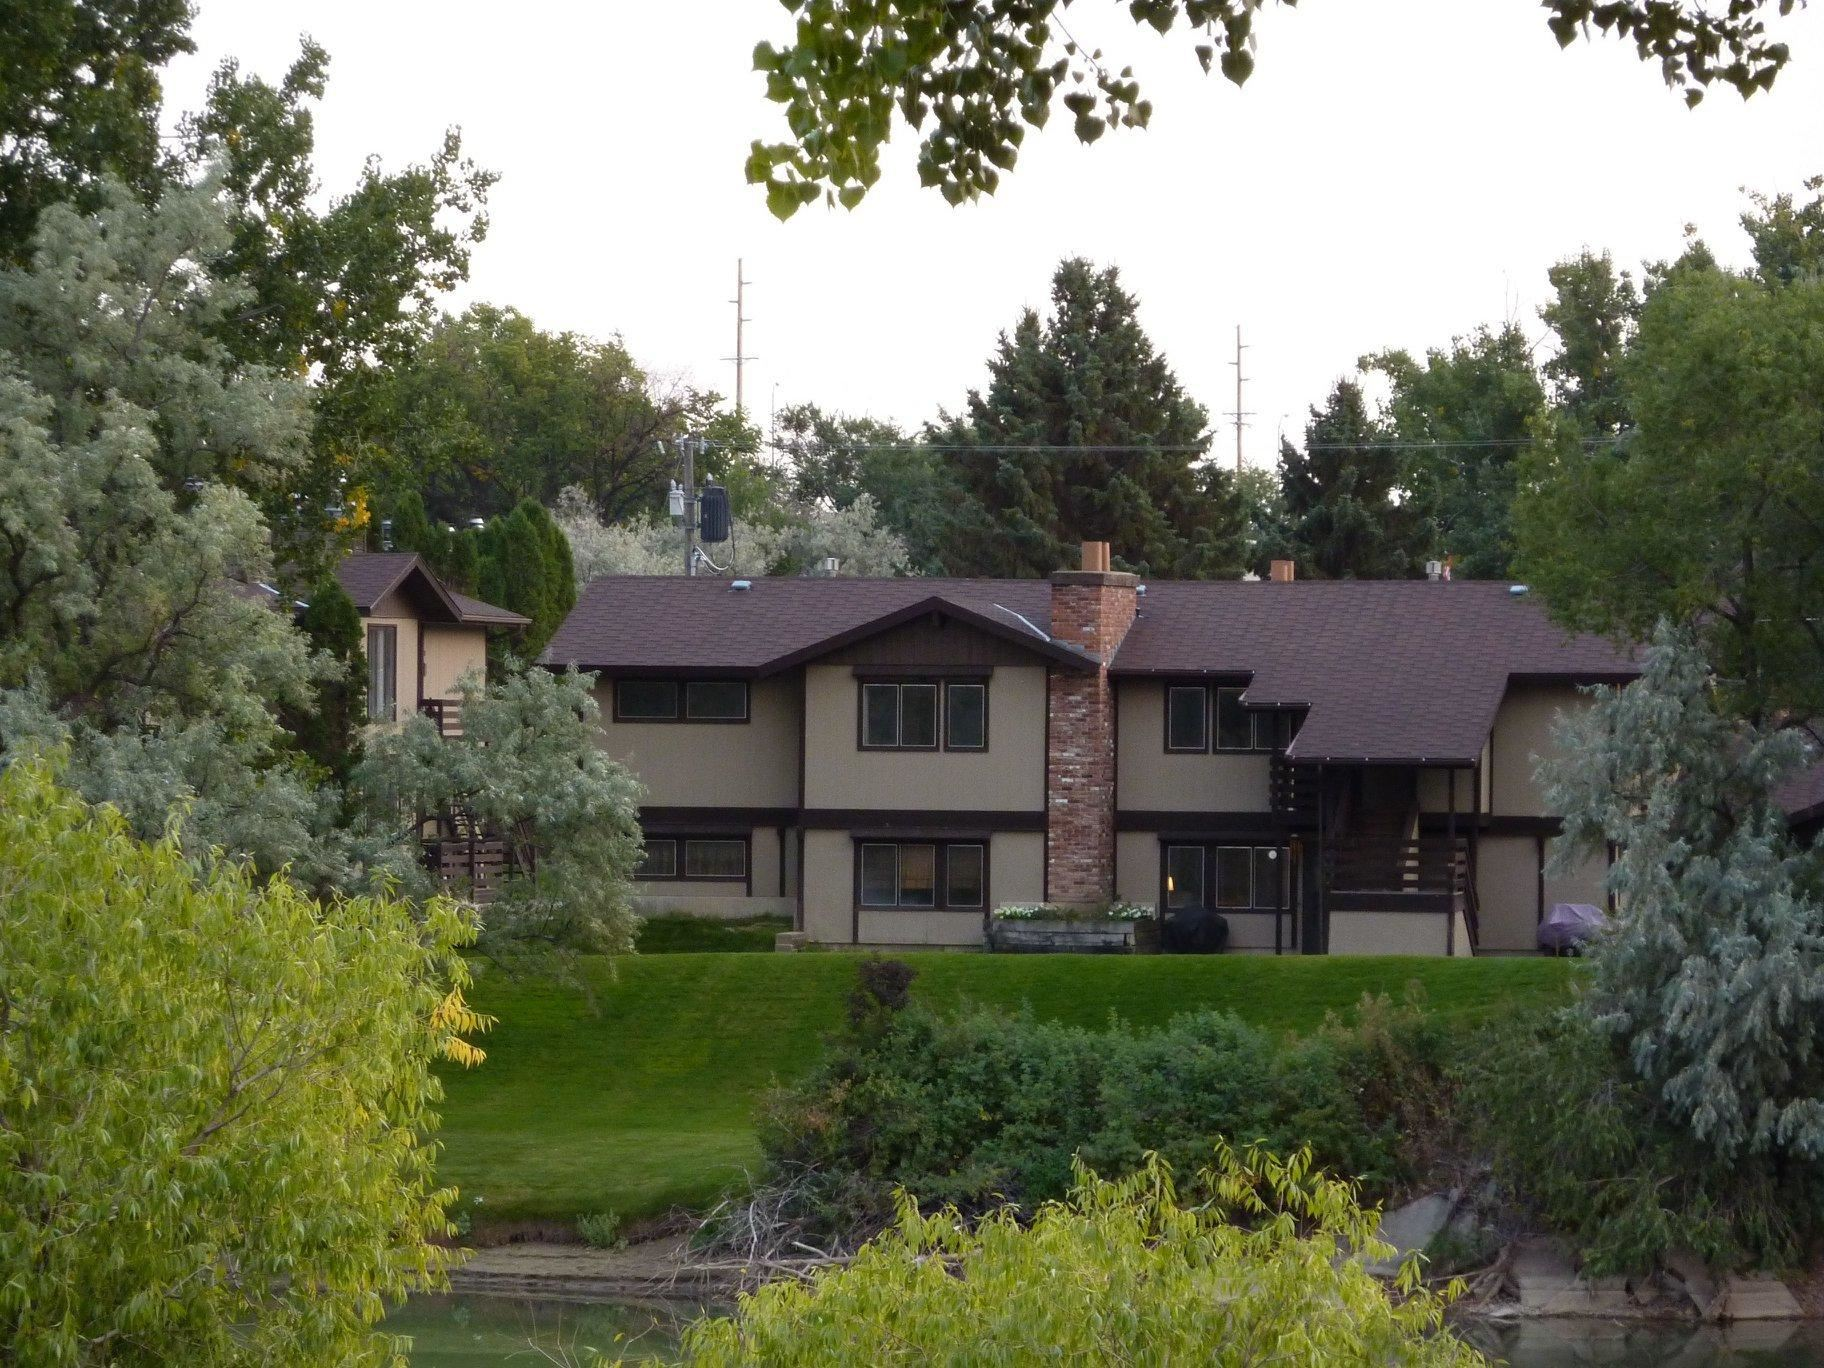 Photo of 1375 13th Avenue South West, Great Falls, MT 59404 (MLS # 22100882)